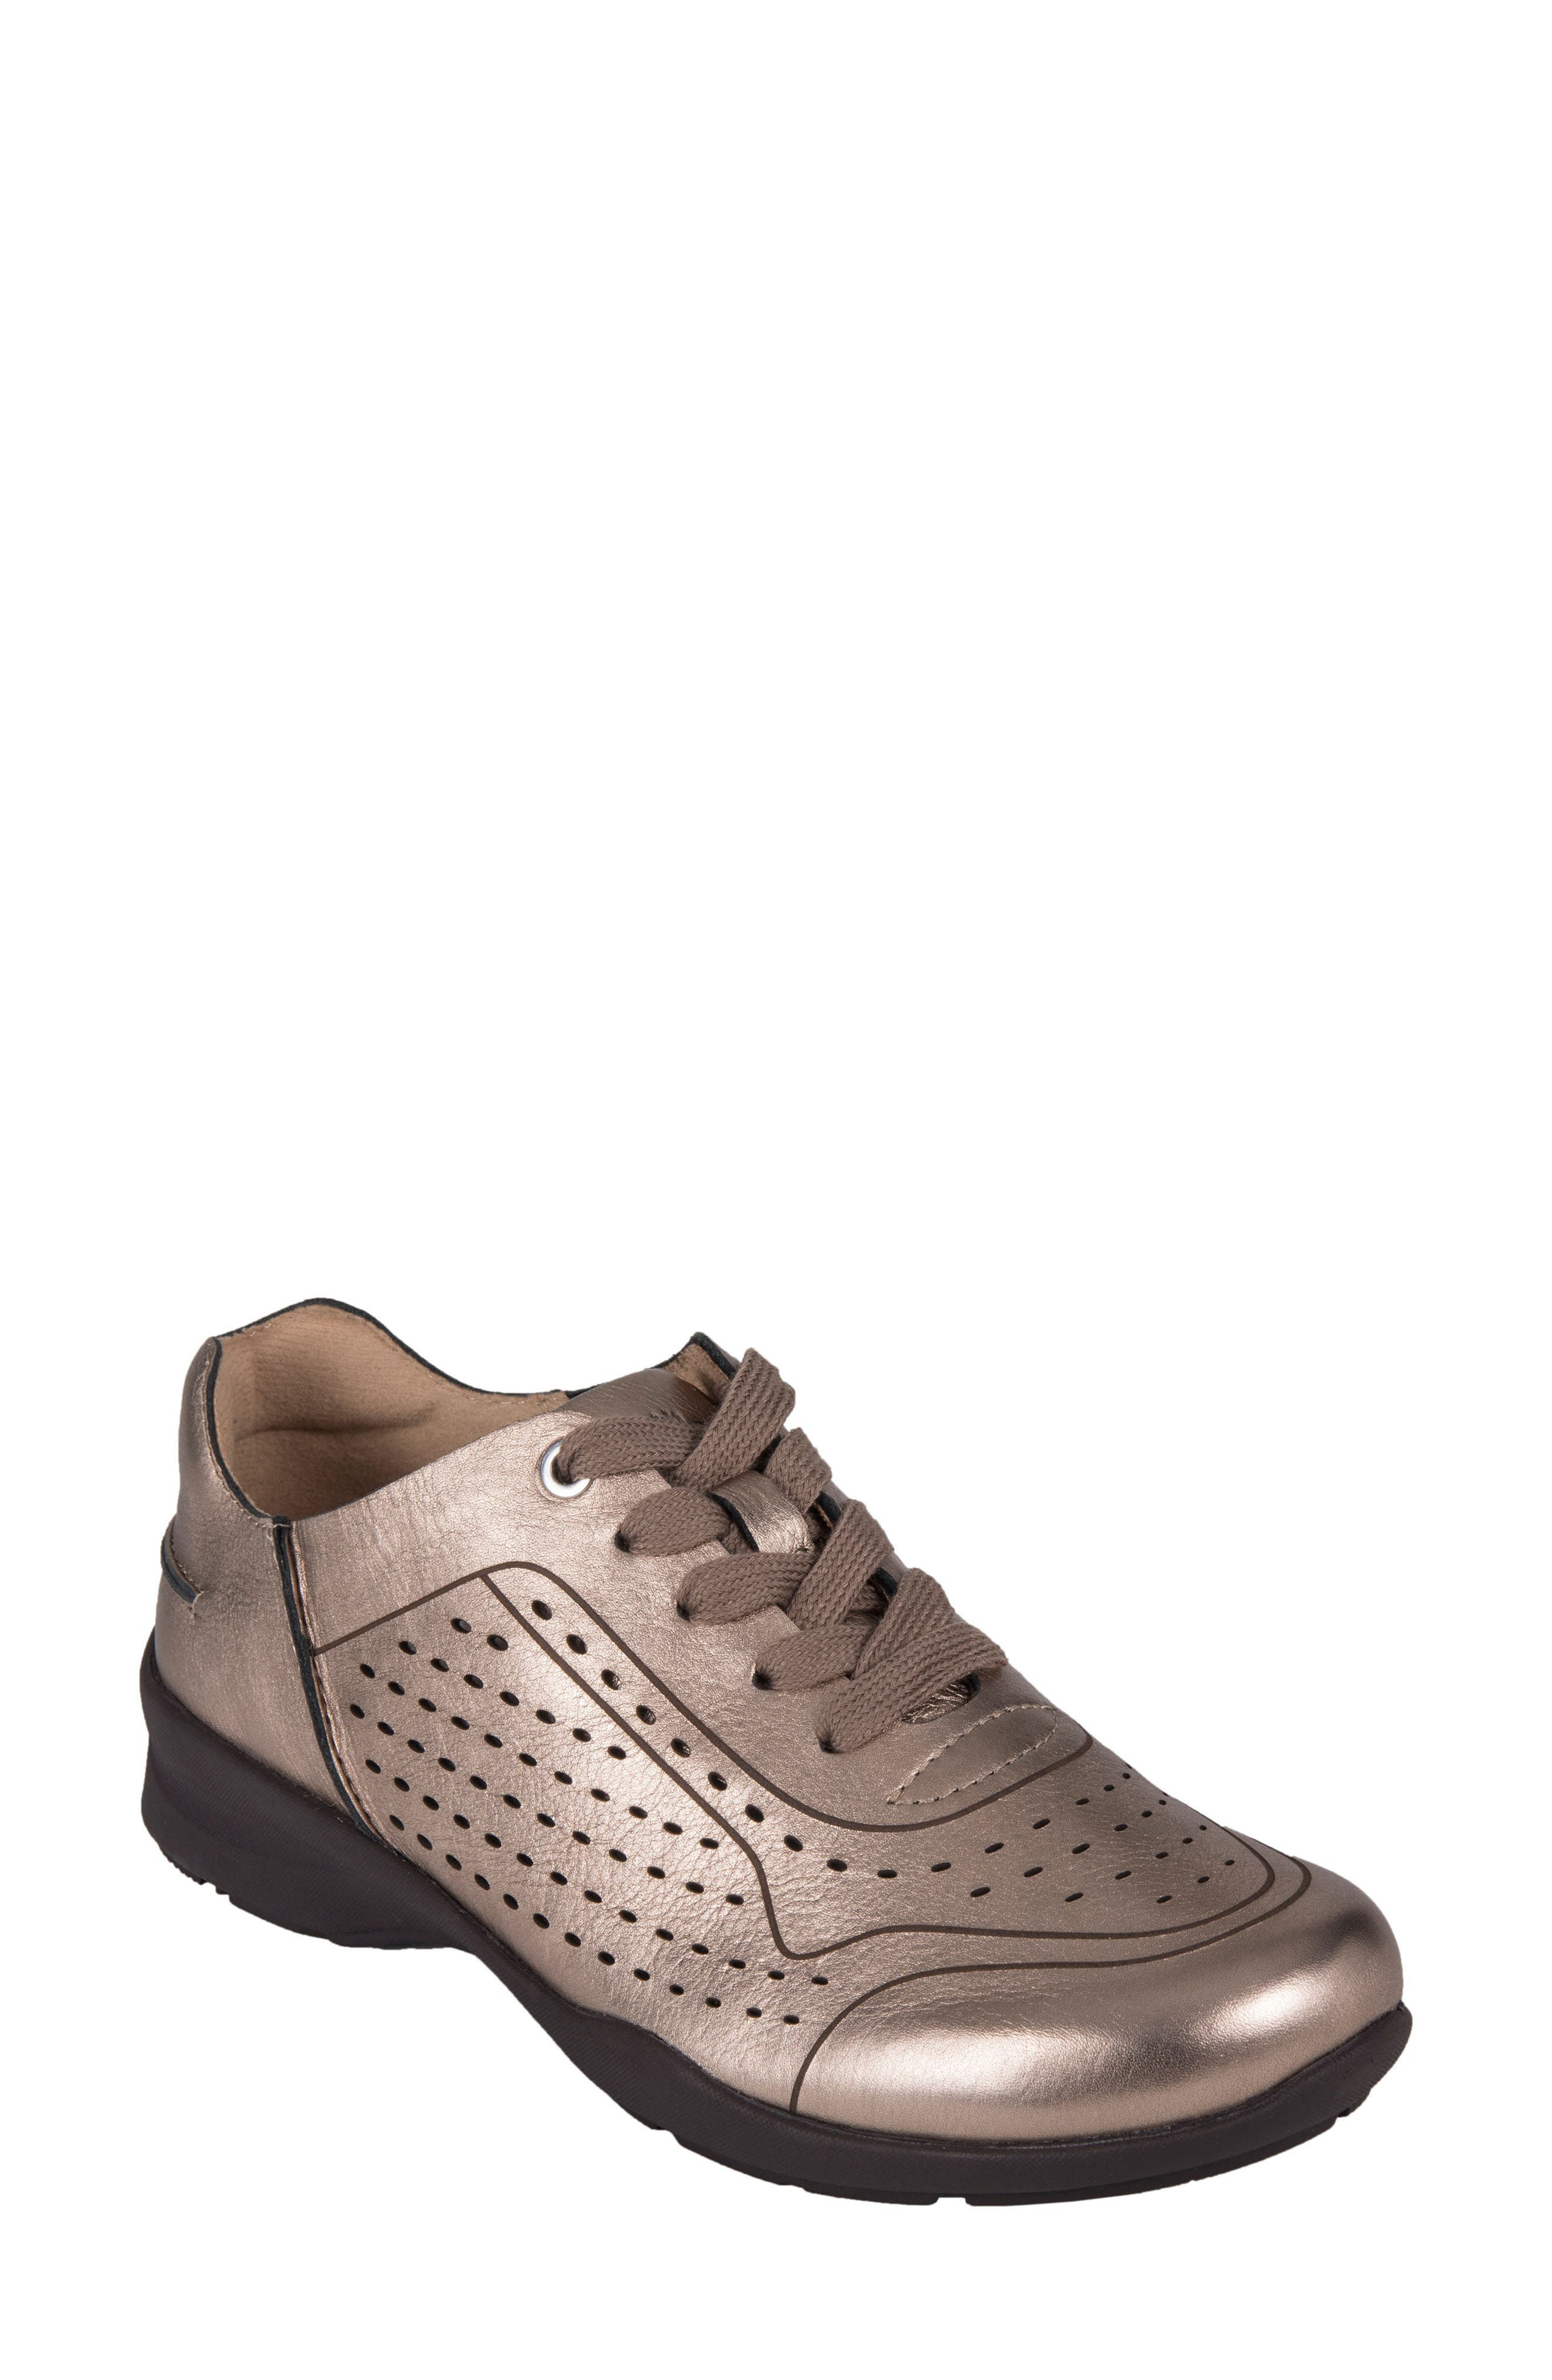 Serval Perforated Sneaker,                             Main thumbnail 1, color,                             CHAMPAGNE METALLIC LEATHER